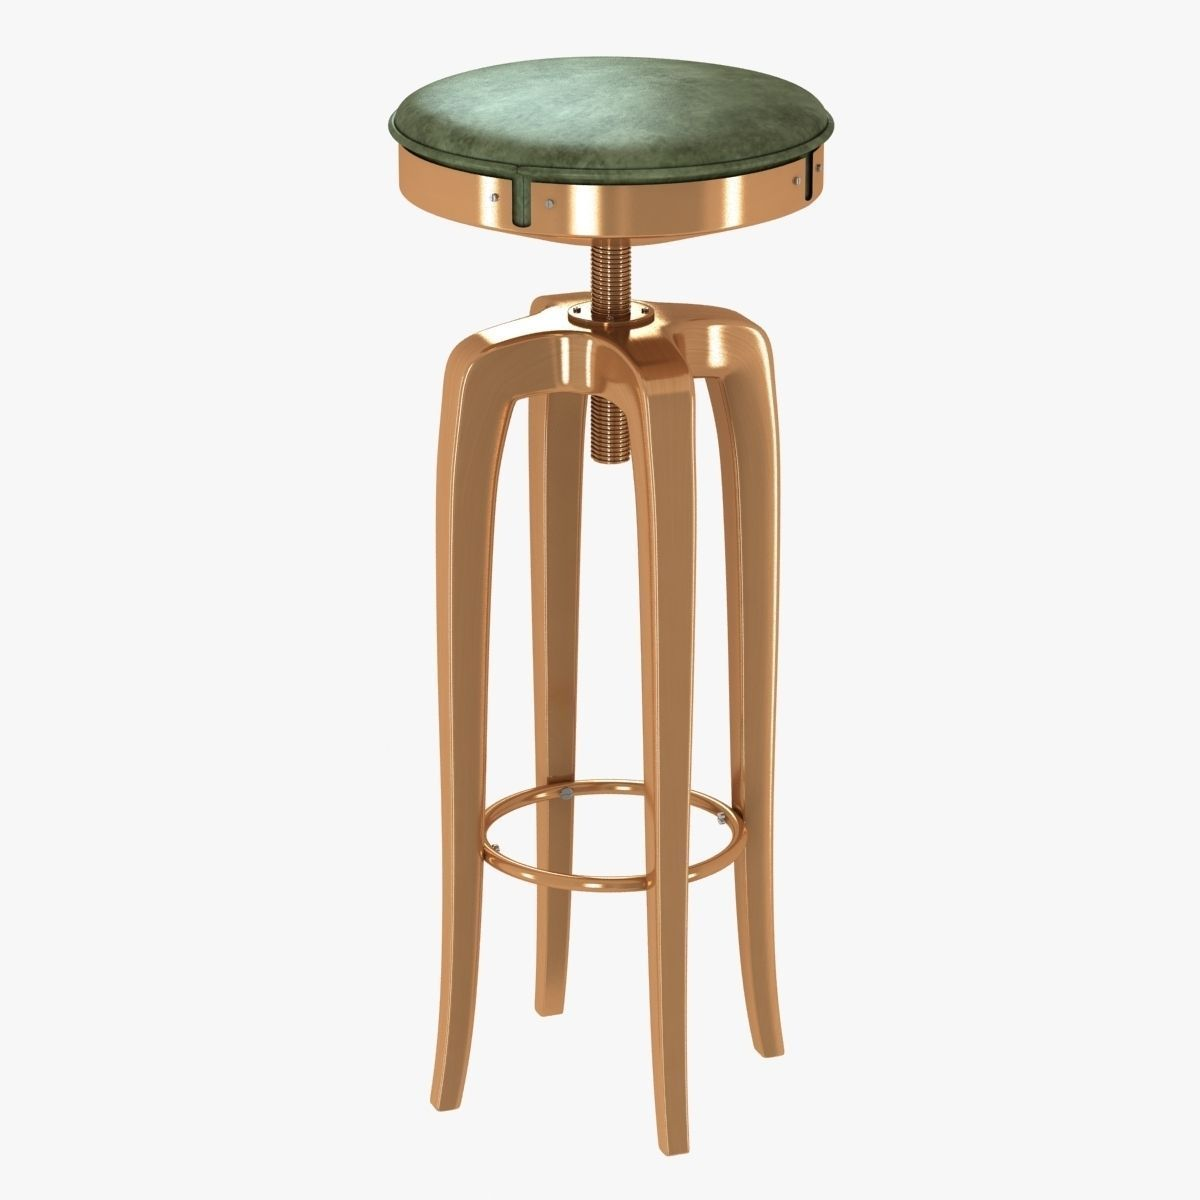 Brabbu Mohawk Modern Leather Bar Stool 3d Model Max Obj 3ds Fbx Mtl 1 ...